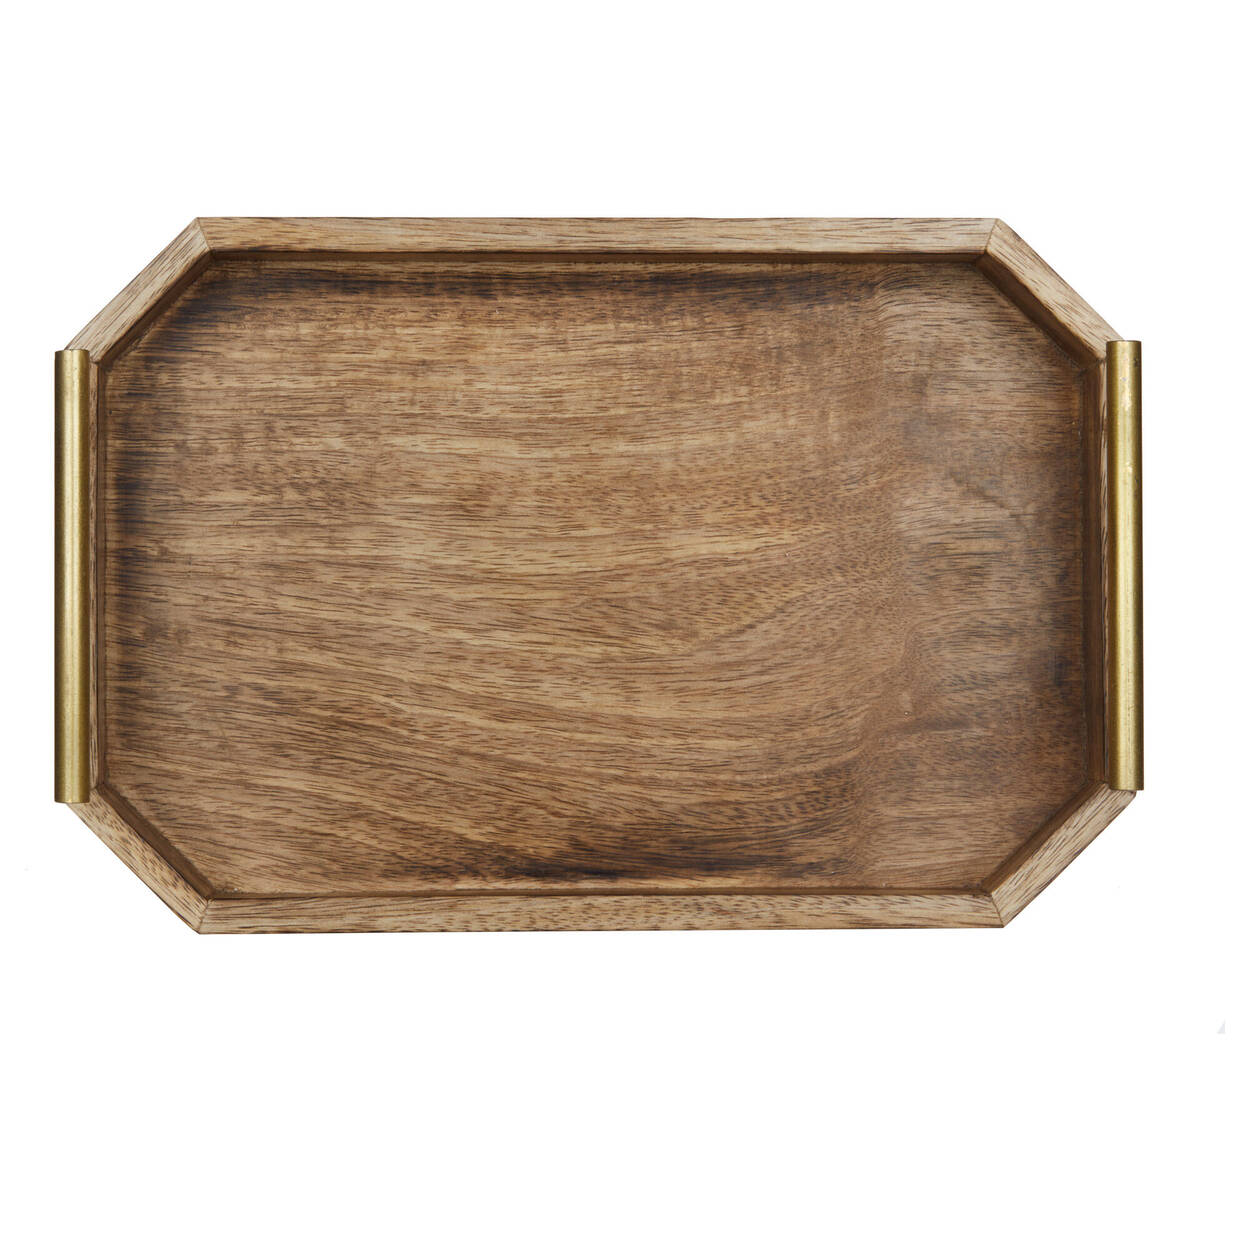 Wood Rectangular Tray with Handles